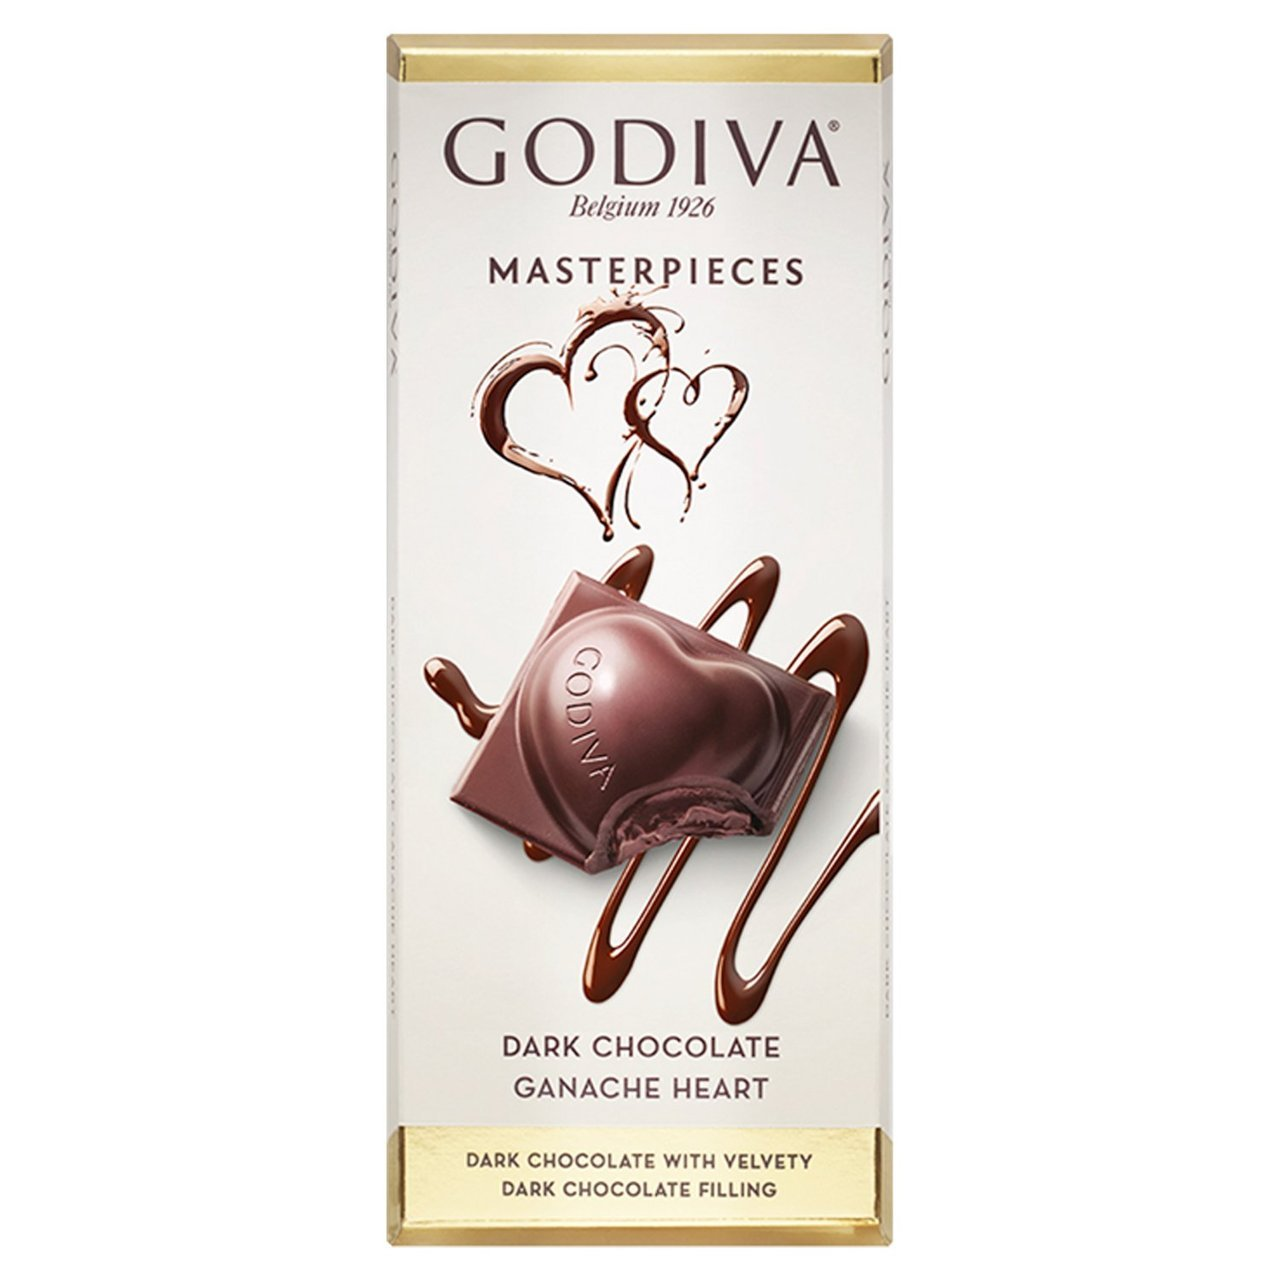 Godiva Master Pieces Dark Chocolate Ganache Heart 86g